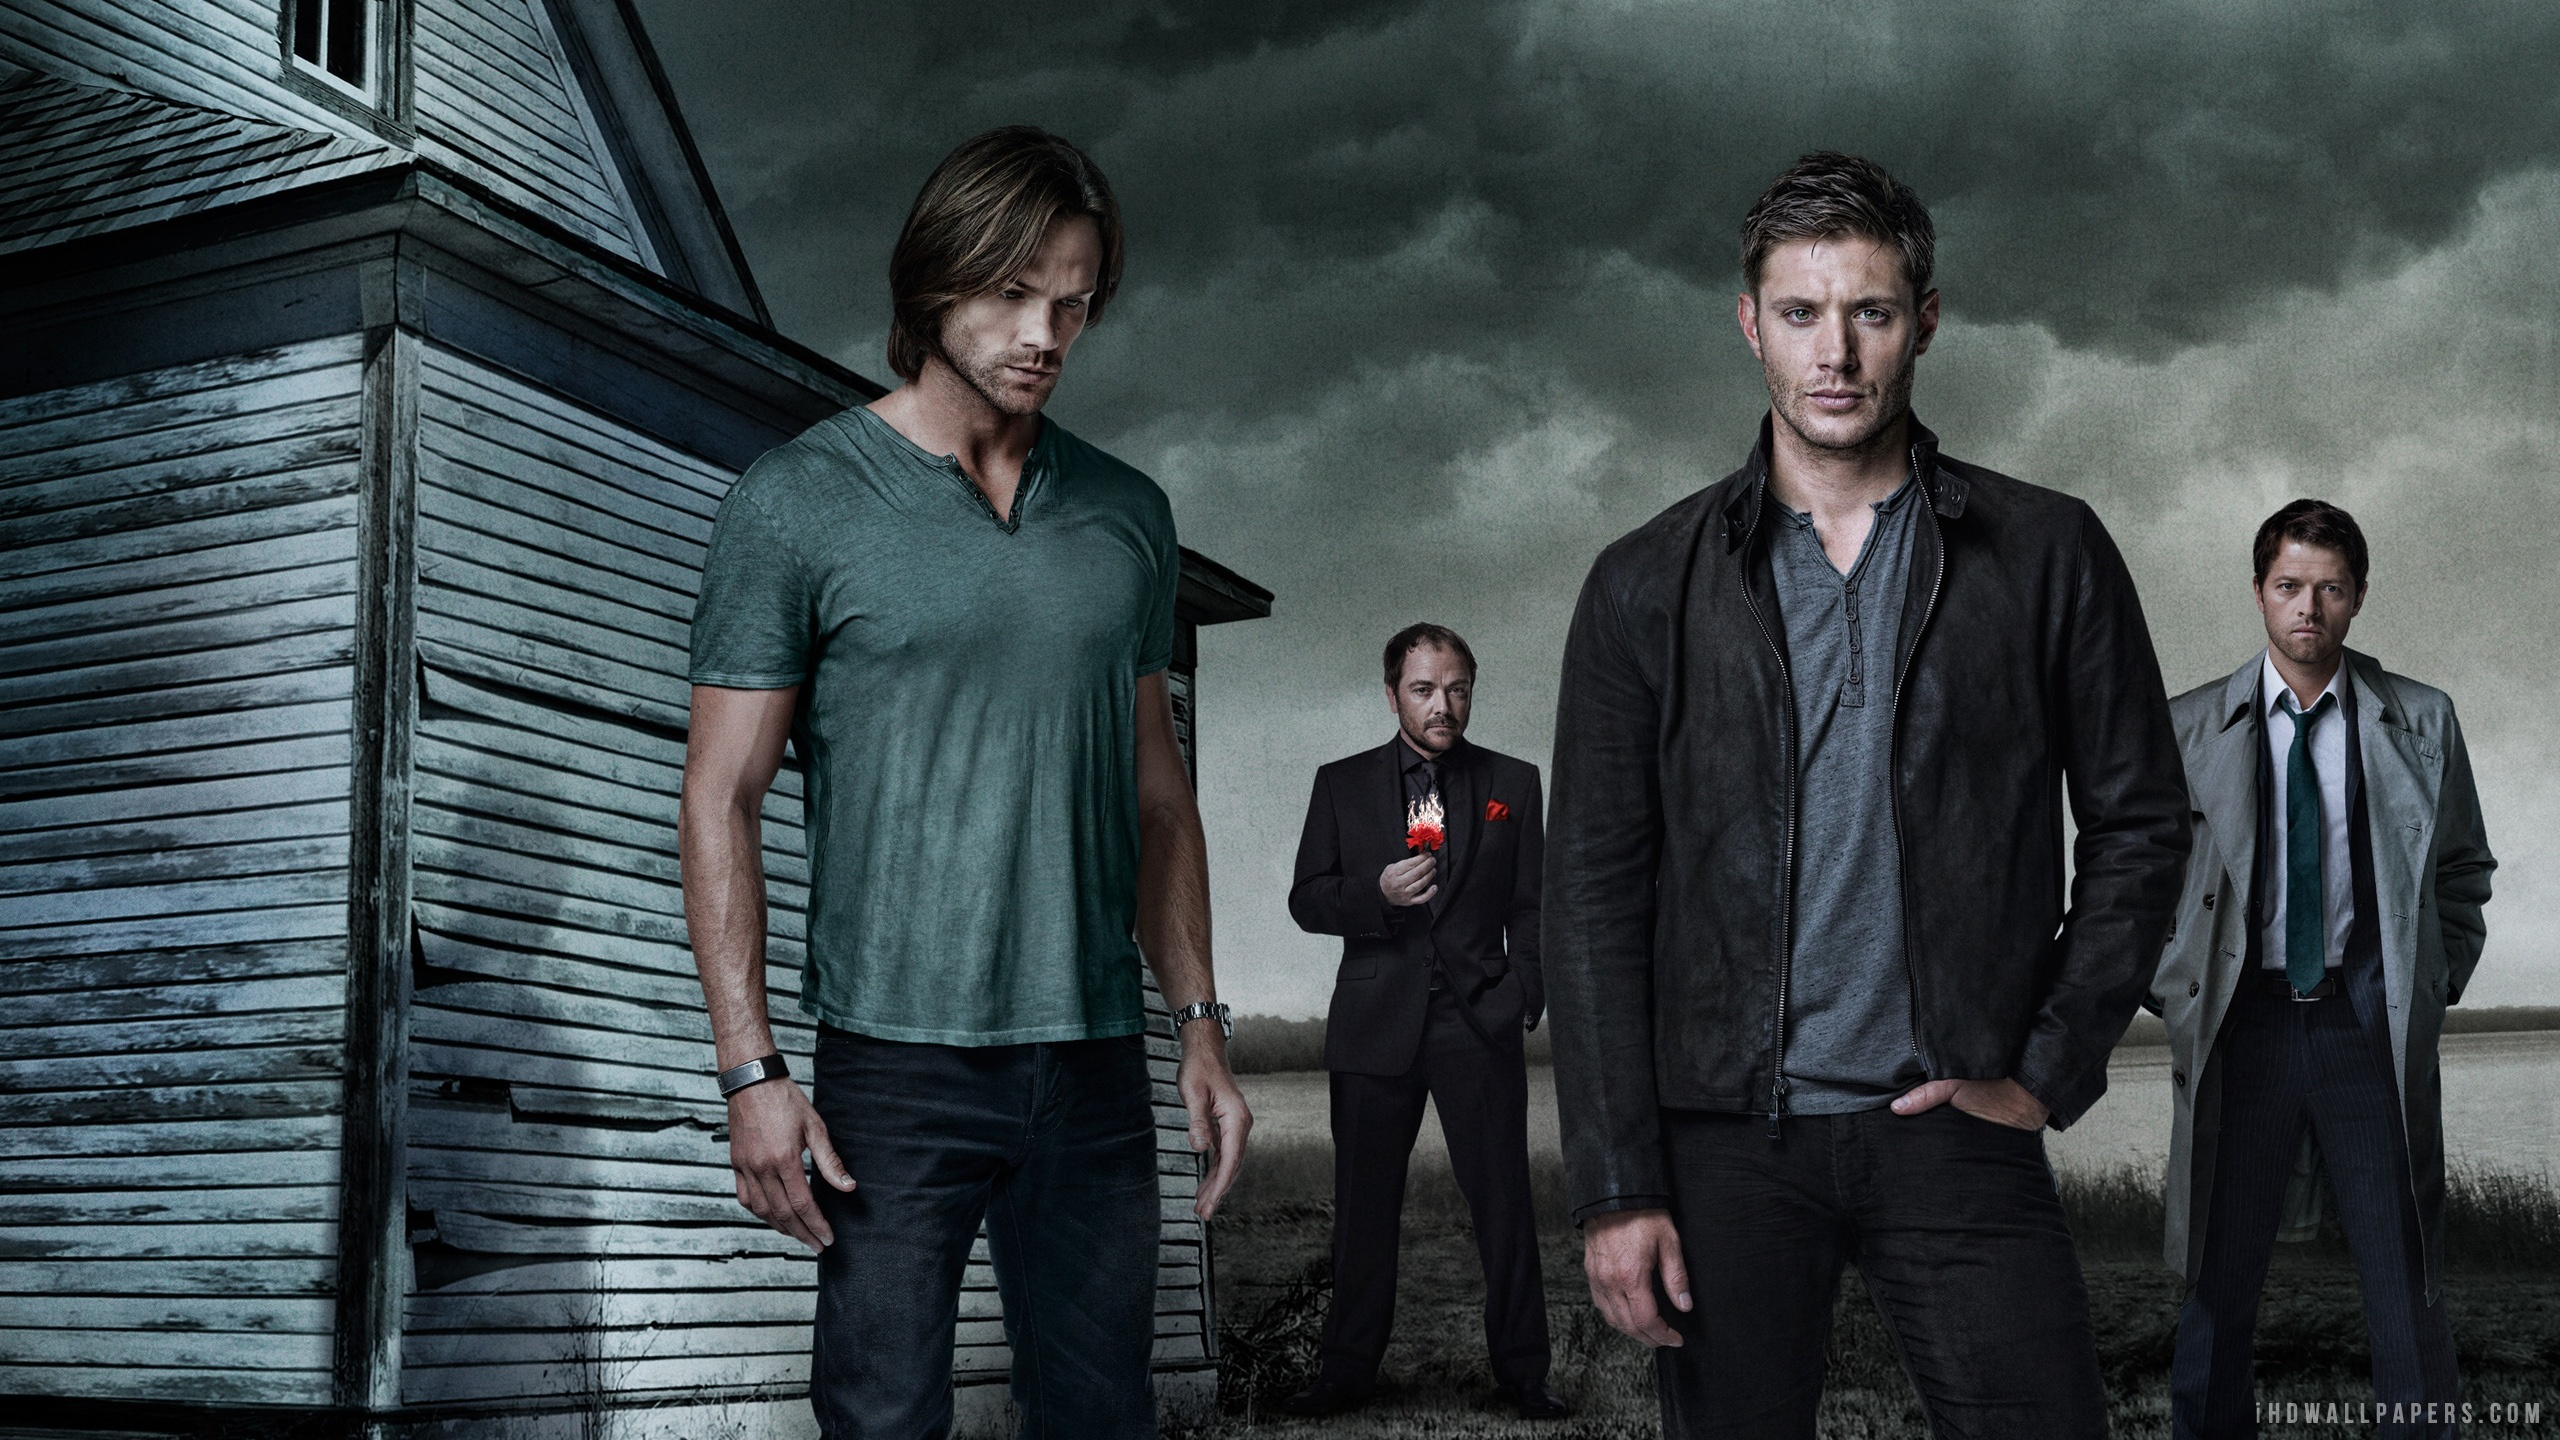 Android 3d Wallpaper 9apps Download Supernatural Season 8 Wallpaper Gallery